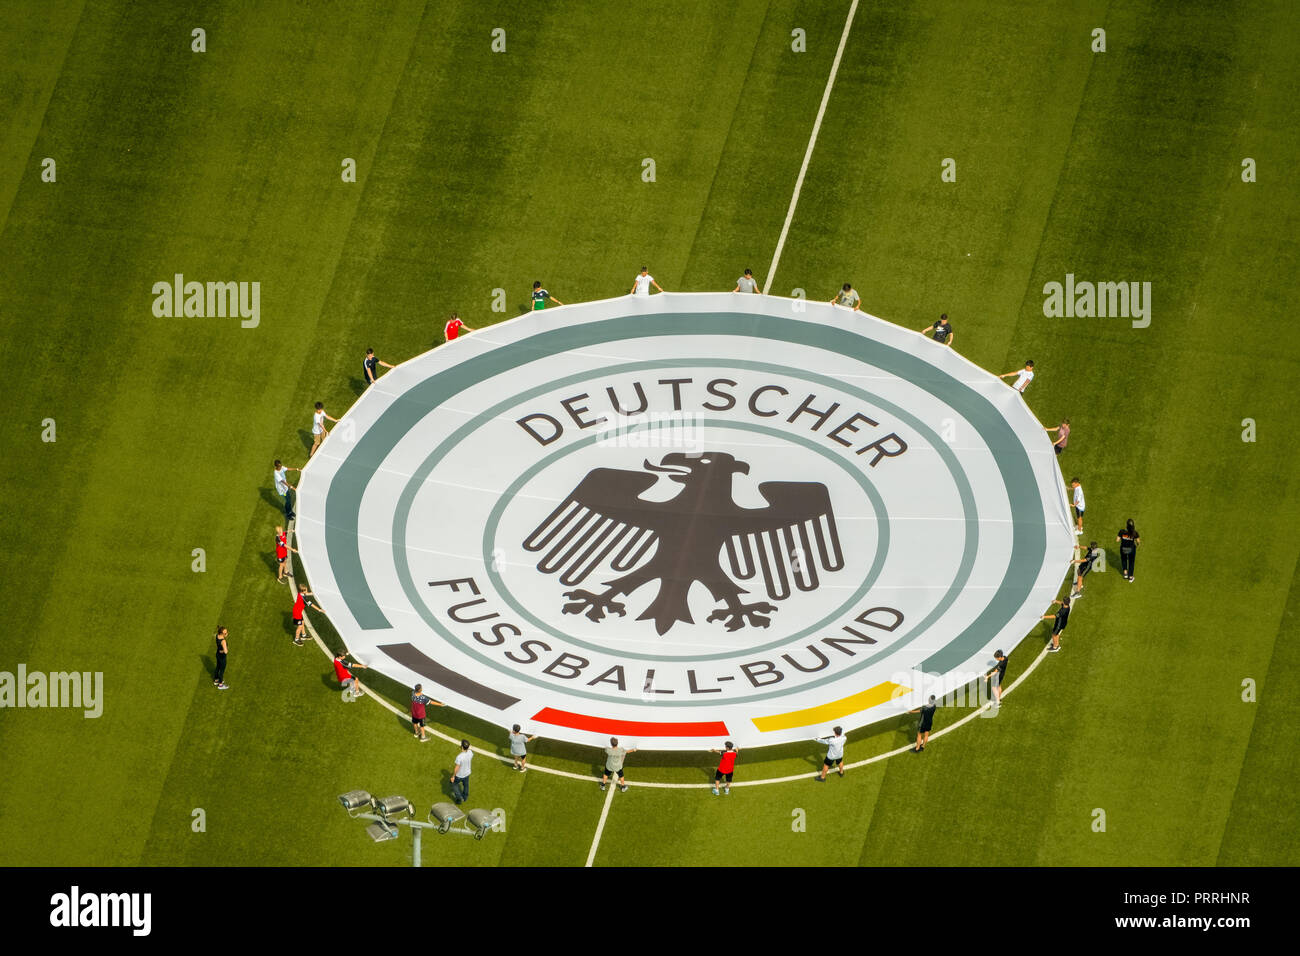 Young football players with rolled out banner with emblem German Football Association, Stadion Niederrhein, Oberhausen - Stock Image